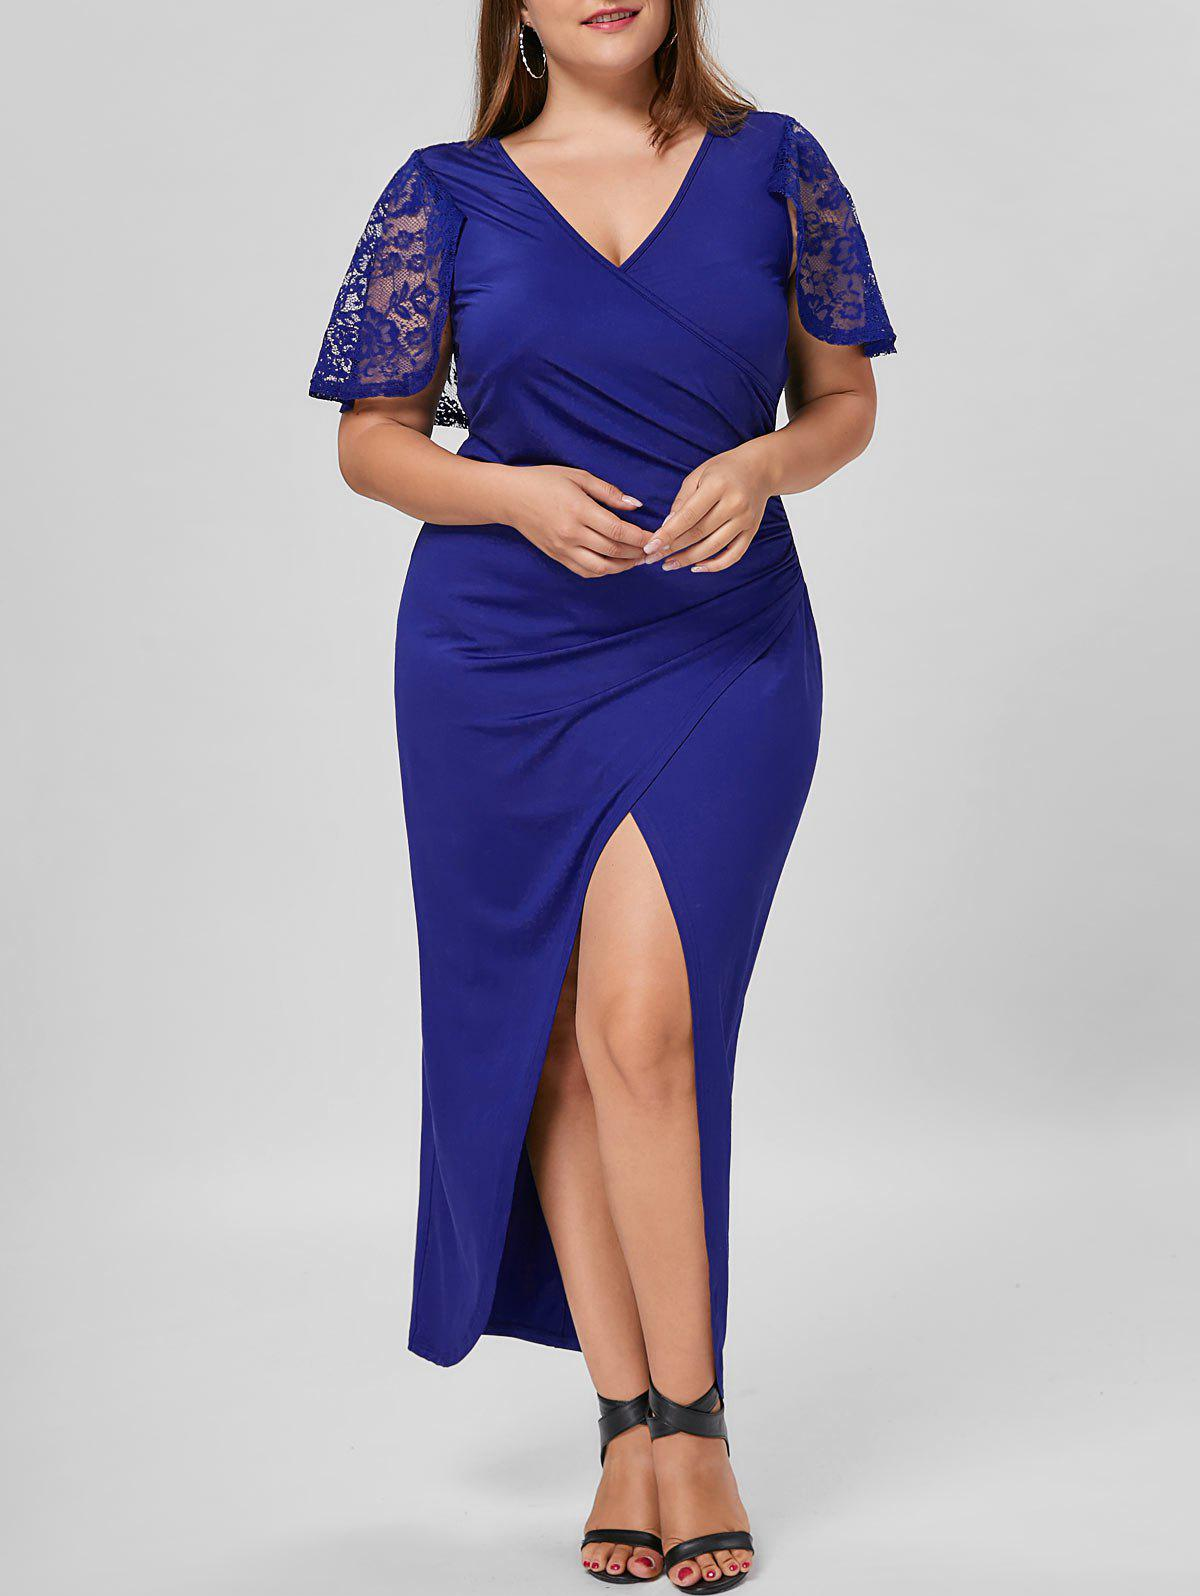 Plus Size Lace Capelet Longline Slit DressWOMEN<br><br>Size: 5XL; Color: BLUE; Style: Brief; Material: Polyester,Spandex; Silhouette: Sheath; Dresses Length: Ankle-Length; Neckline: V-Neck; Sleeve Length: Short Sleeves; Embellishment: Lace; Pattern Type: Solid Color; With Belt: No; Season: Summer; Weight: 0.4500kg; Package Contents: 1 x Dress;